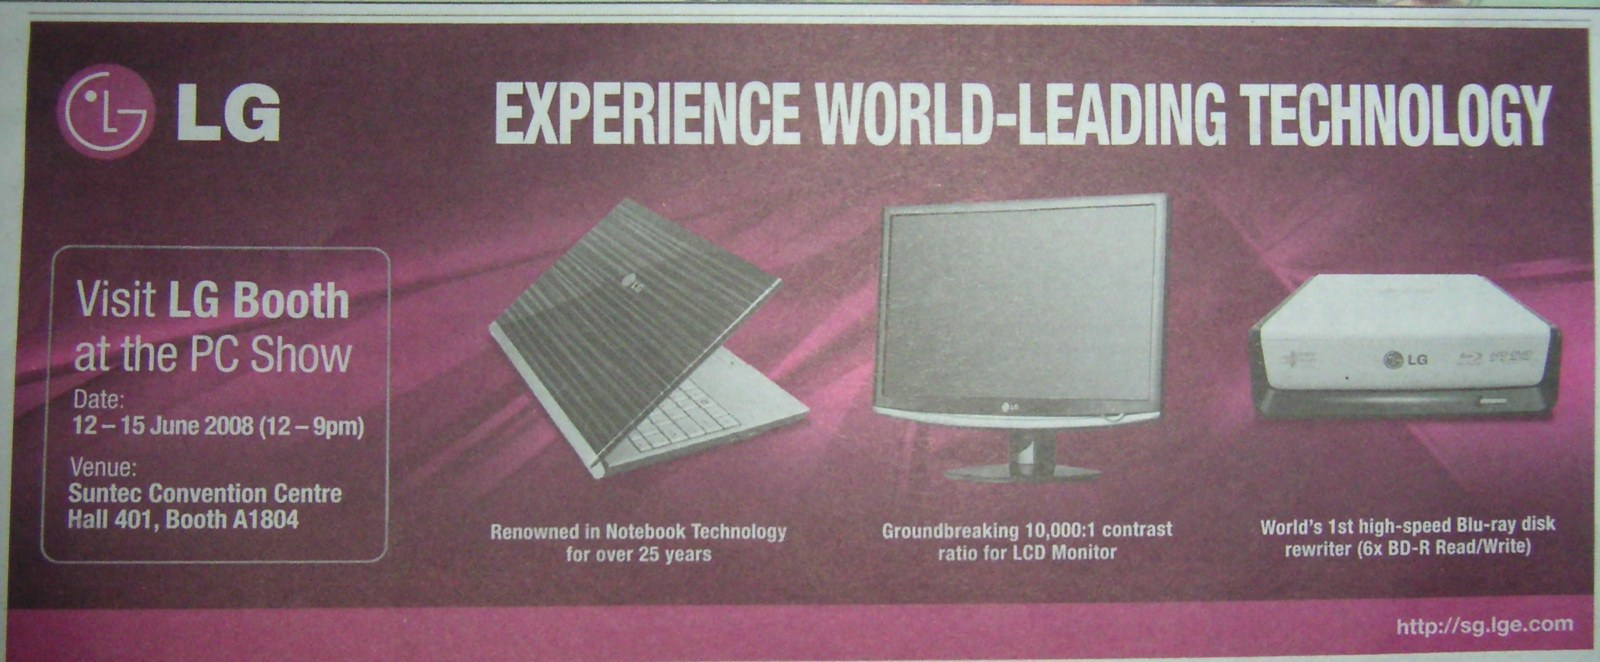 PC Show 2008 price list image brochure of Lg Promo